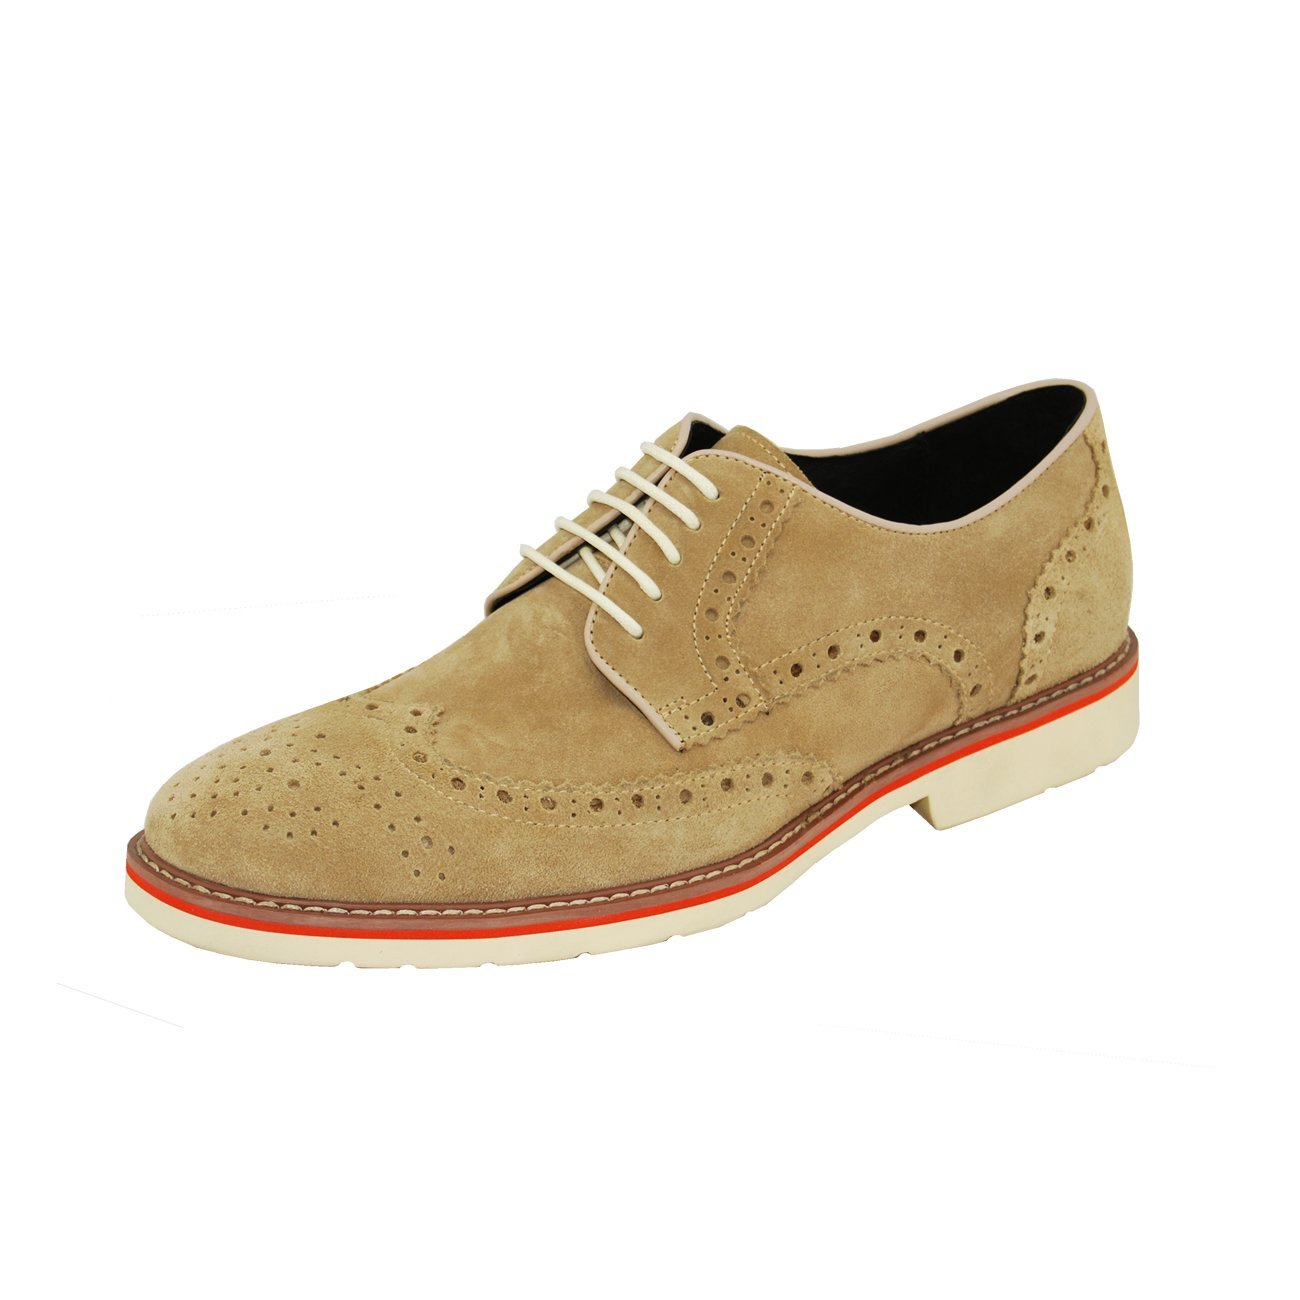 Natazzi Italian Napa Suede Calfskin Leather Shoes Hand Made Men S Player Lace Up Wingtip Oxford